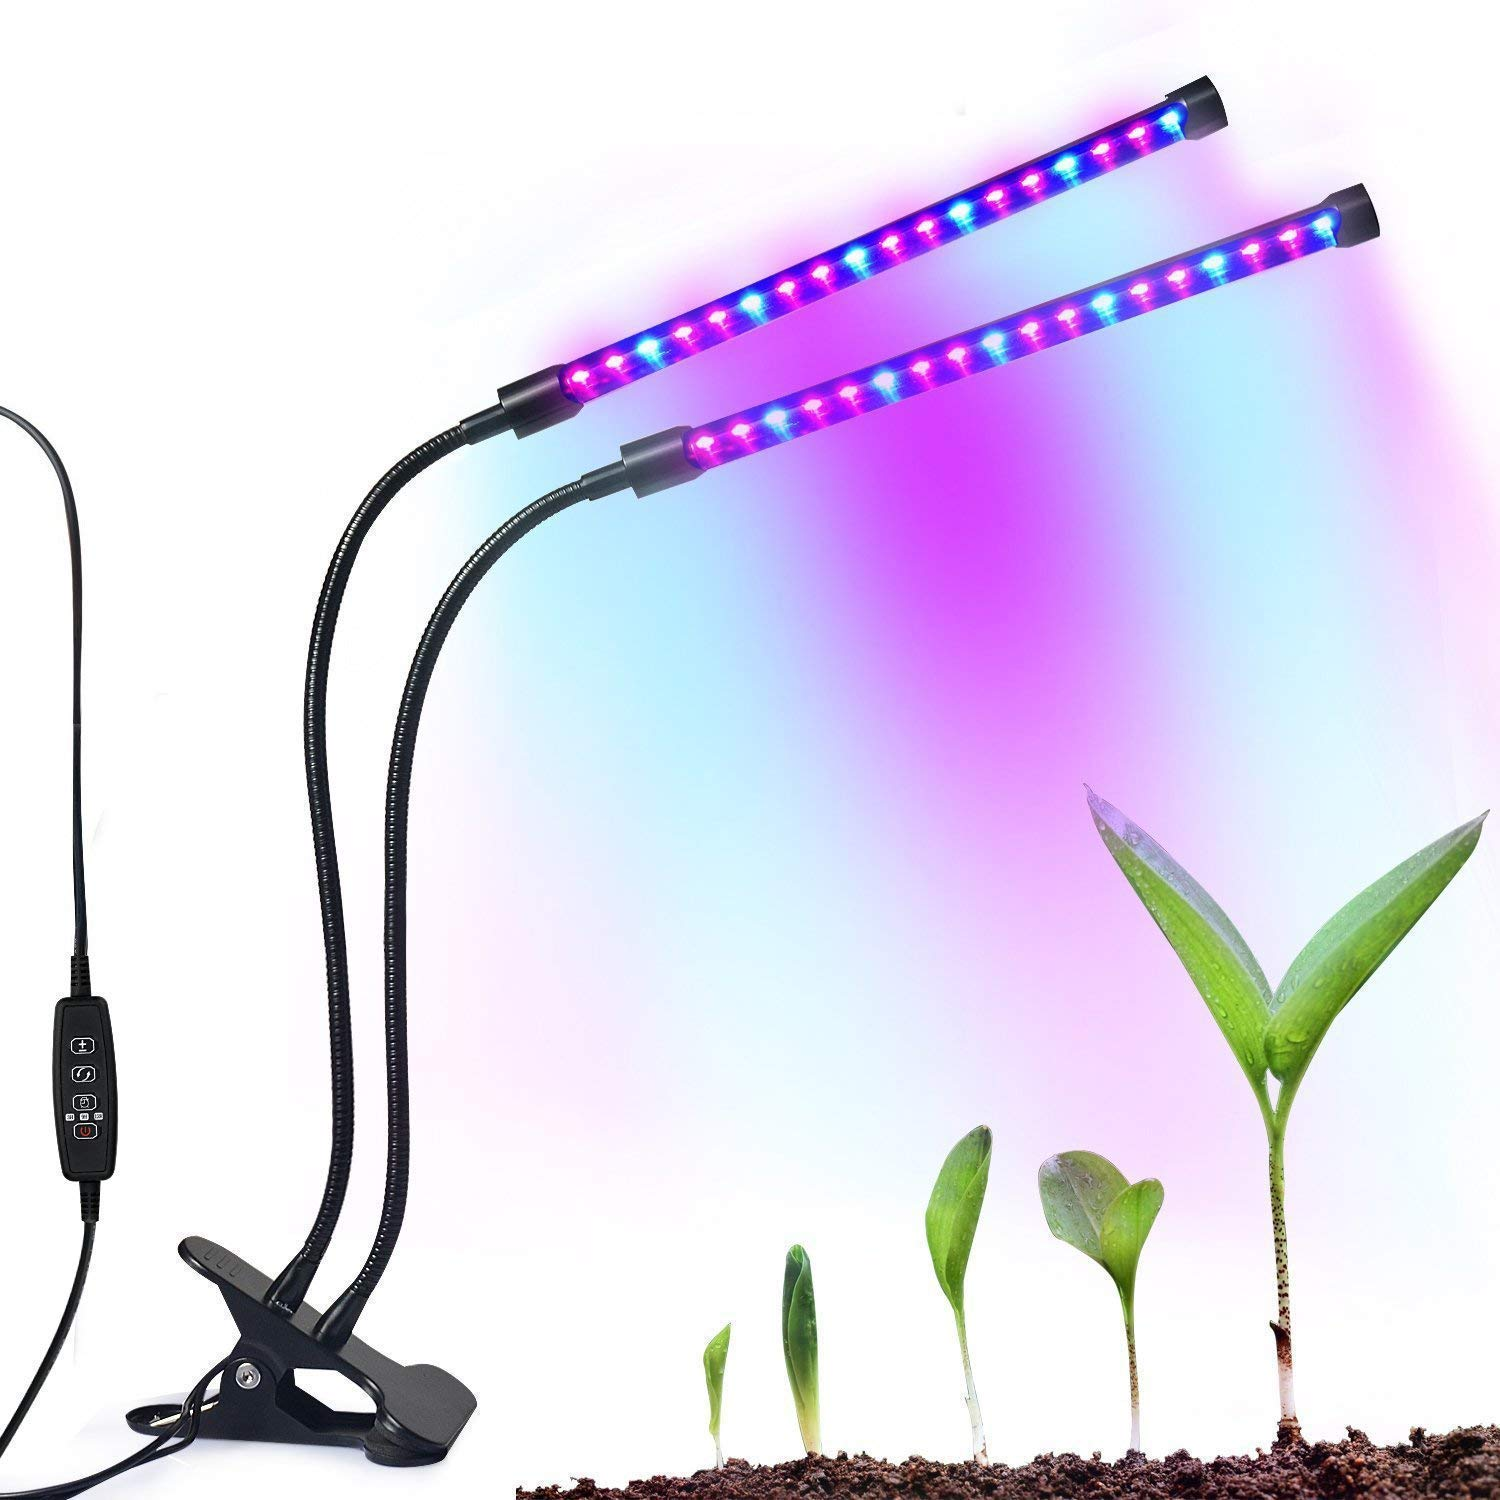 LED Plant Light 18W, iBazal Grow Light Dual Head Lamp Plant Grow Lights 36LEDs with 24 Red/12 Blue Spectrum, 3/9/12H Timer,5 Dimmable Levels for Indoor Plants Small Growing Tent Home Hydroponic Garden Greenhouse PlantLight